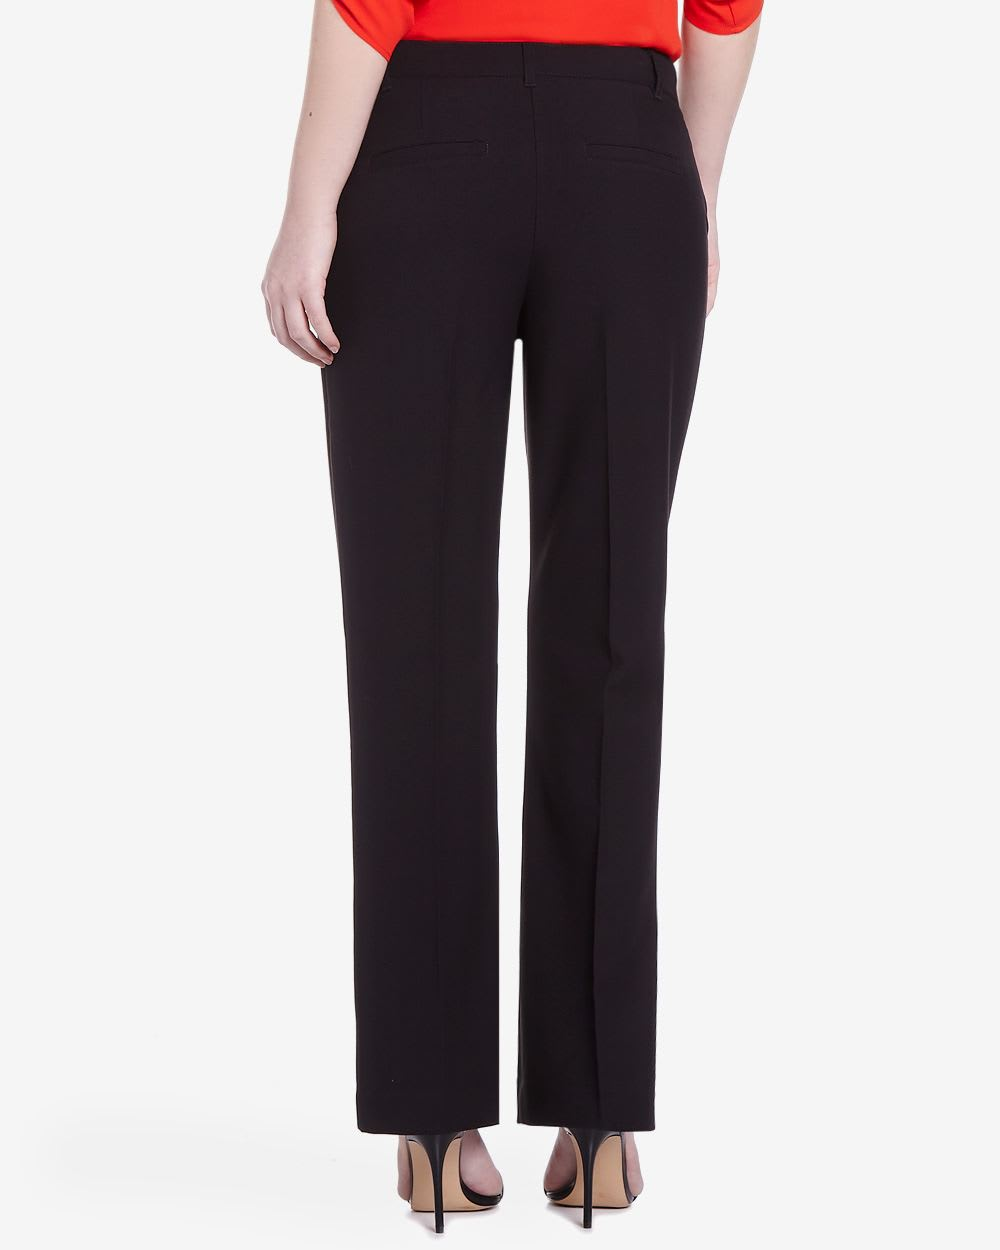 Pants. Refresh your everyday and occasionwear closet choices with stylishly chic inspiration from our new-in line of women's pants. From highly adaptable straight leg, wide leg and short leg designs, we've got everything you need to look and feel your dress to impress confident best.